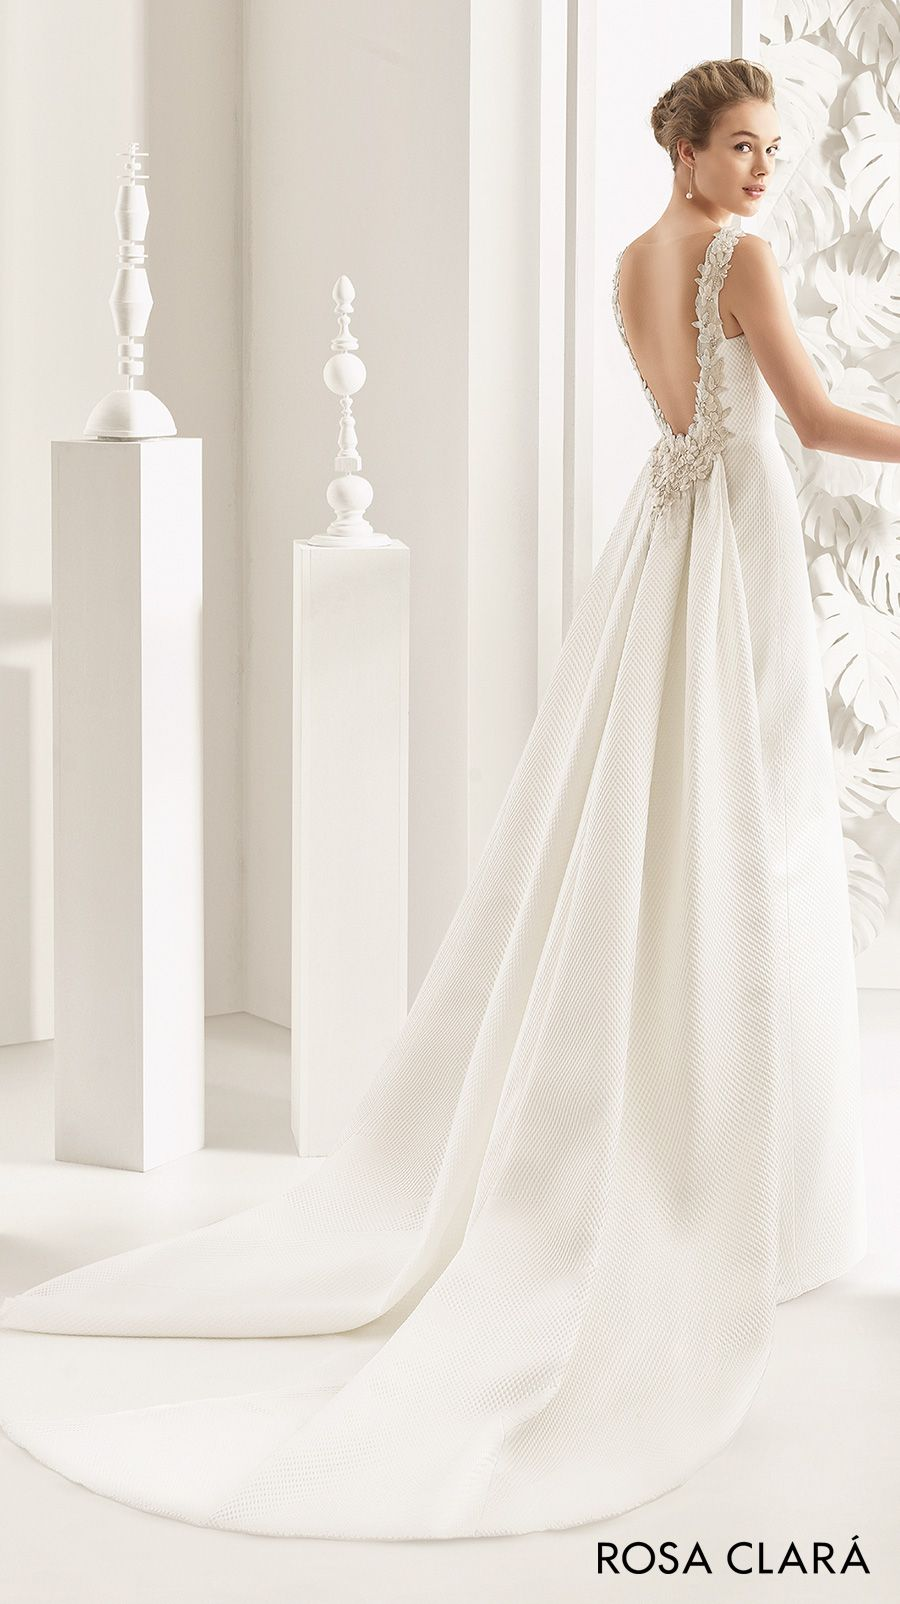 Rosa Clará 2017 Bridal Collection — These Wedding Dresses feature ...